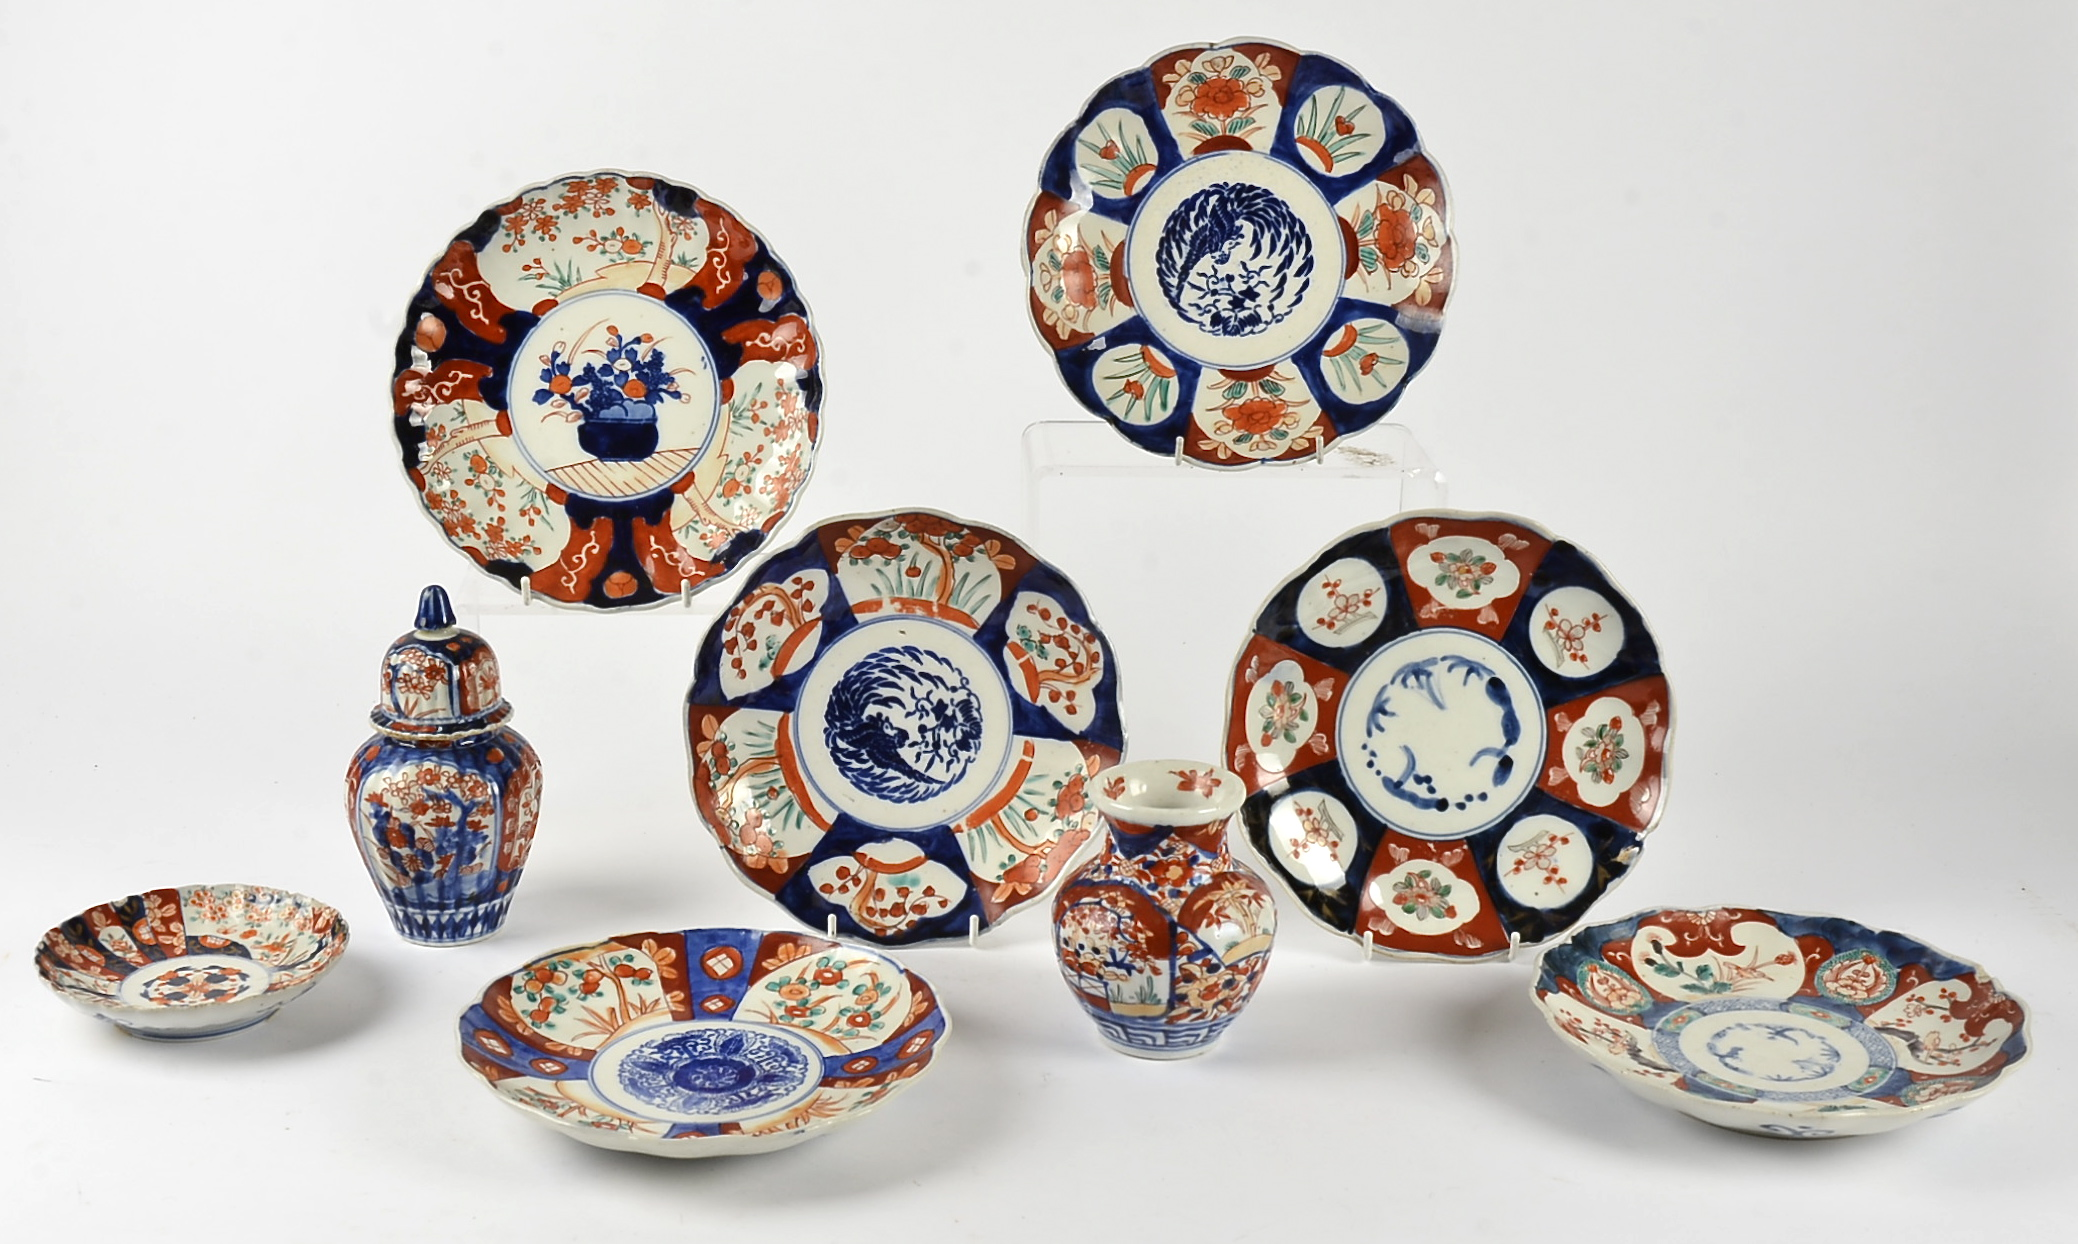 Lot 217 - A small collection of Imari ware, to include a pair of dishes with central flying bird design,